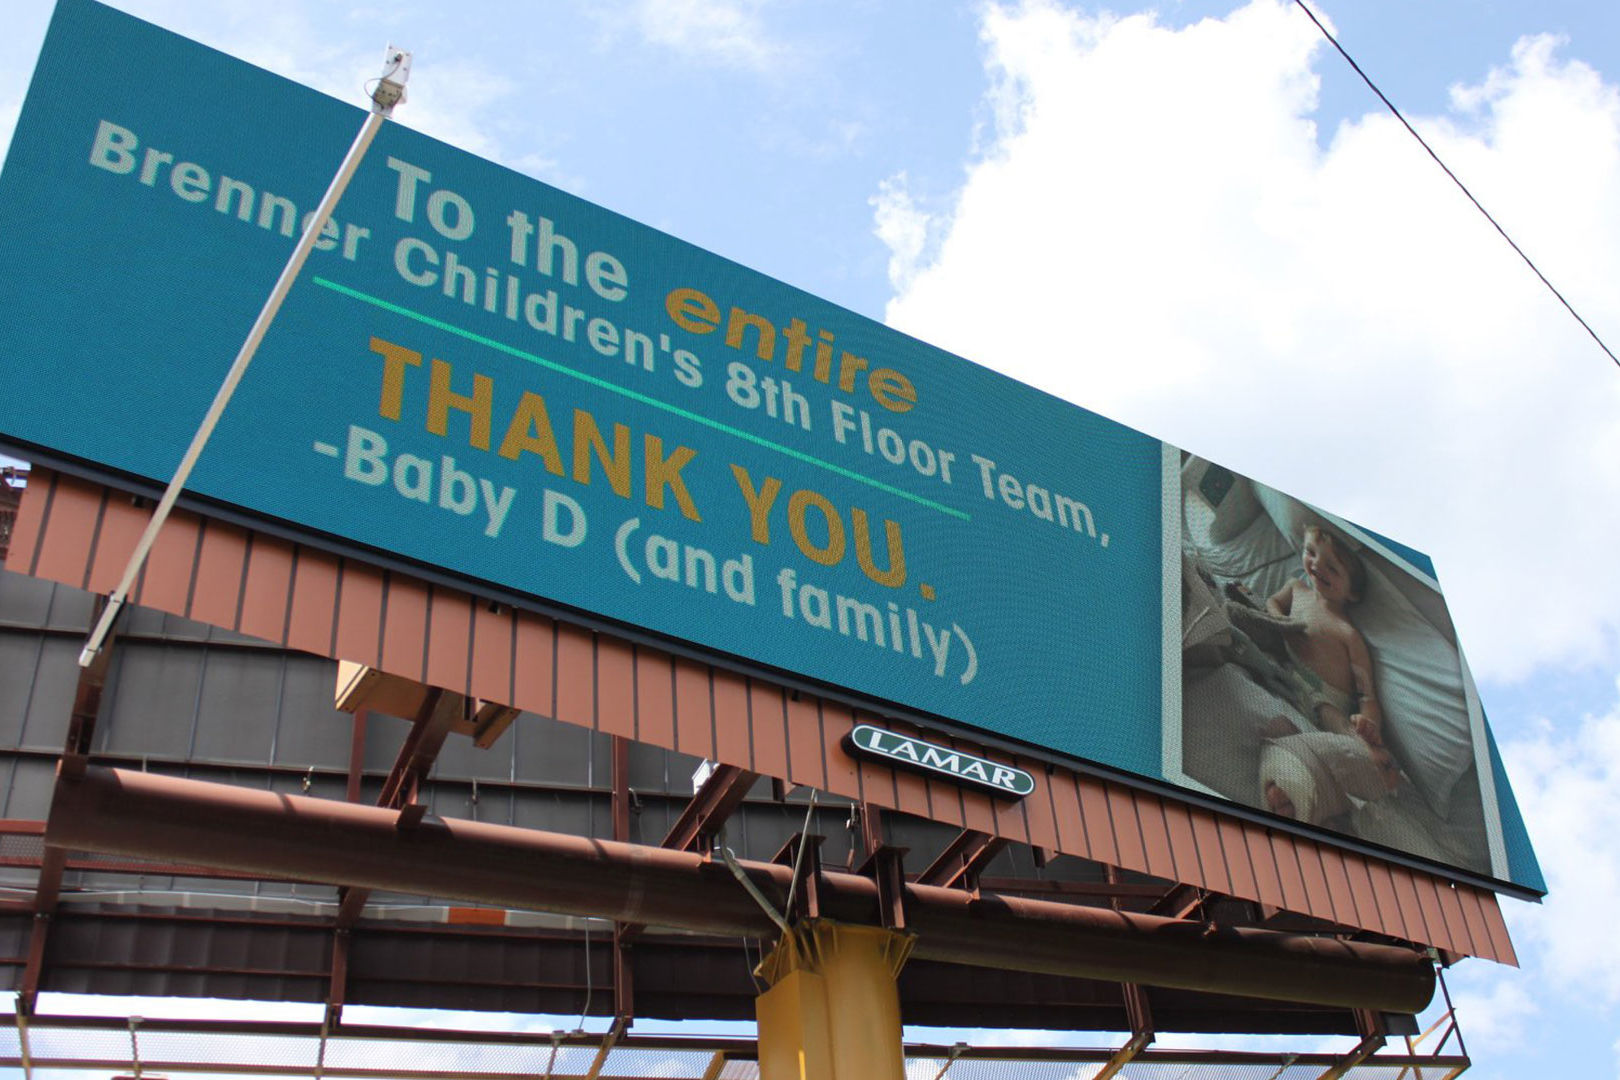 North Carolina Dad Uses Billboard to Thank Hospital That Treated His 3-Year-Old Son